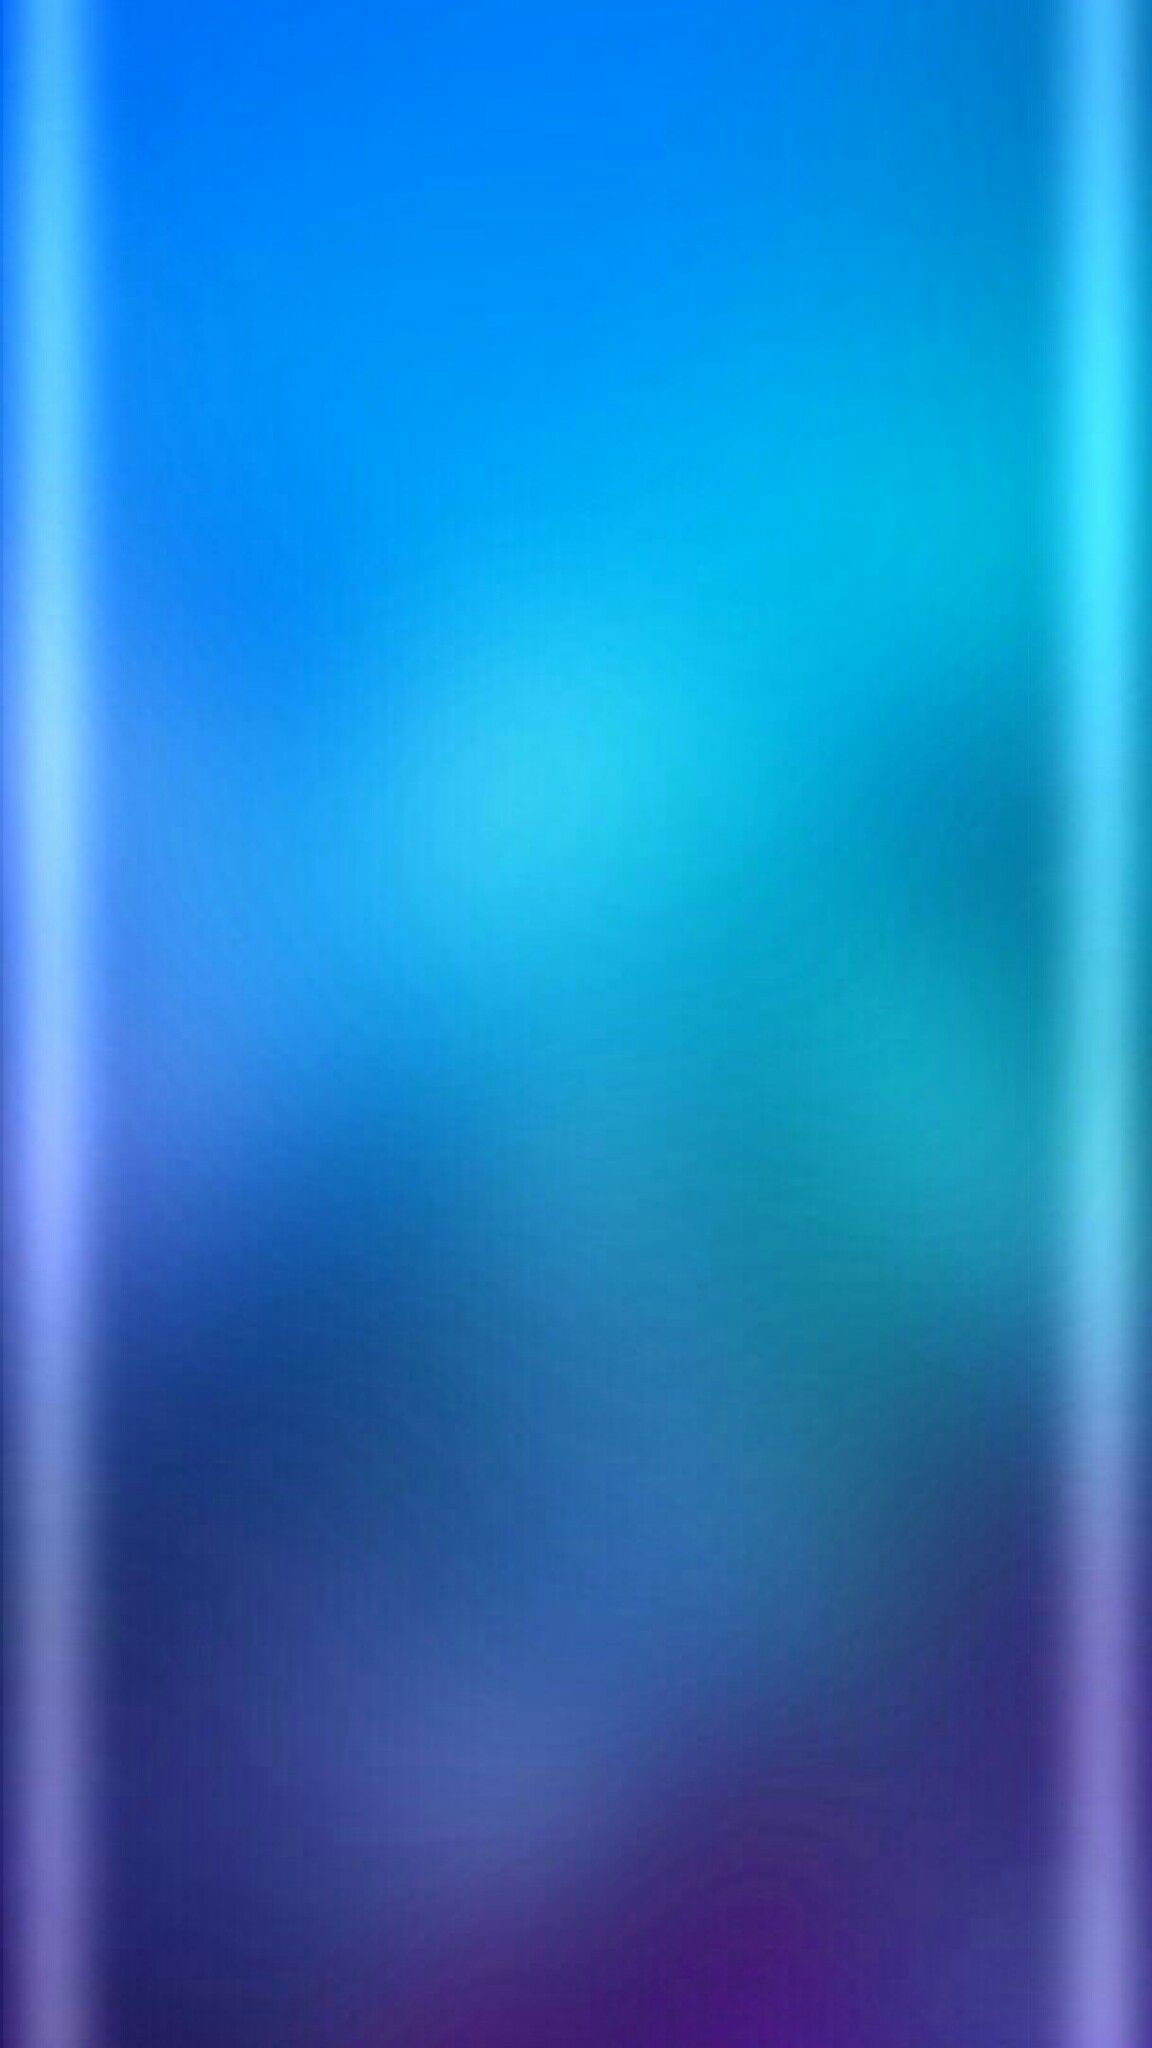 Res: 1152x2048, Lock Screens, Cell Phone Wallpapers, Cover Photos, Wallpaper Backgrounds,  Backrounds, Mustache, Samsung, Blues, Metallic